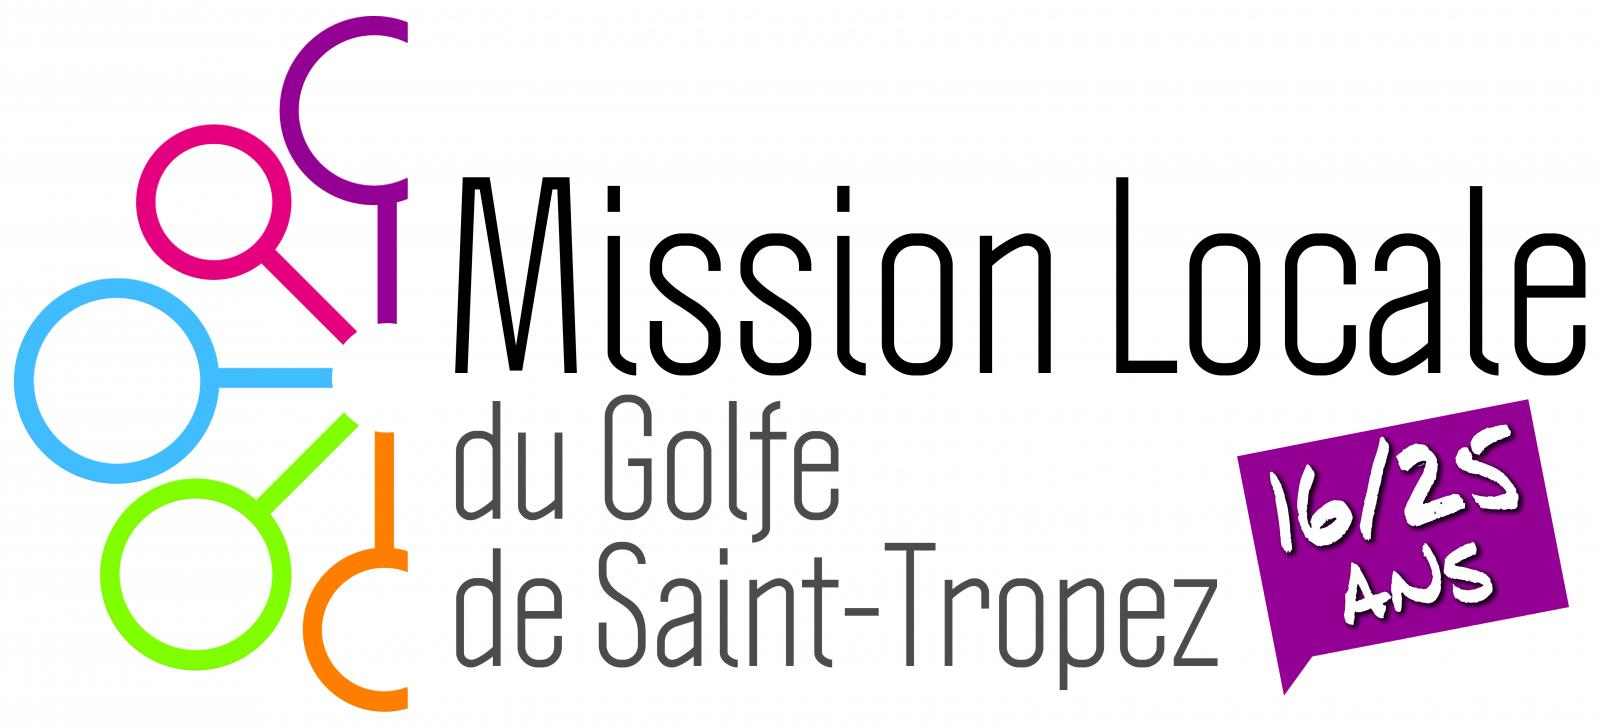 For young people from 16 to 25 years old: The Local Mission of the Gulf of Saint-Tropez